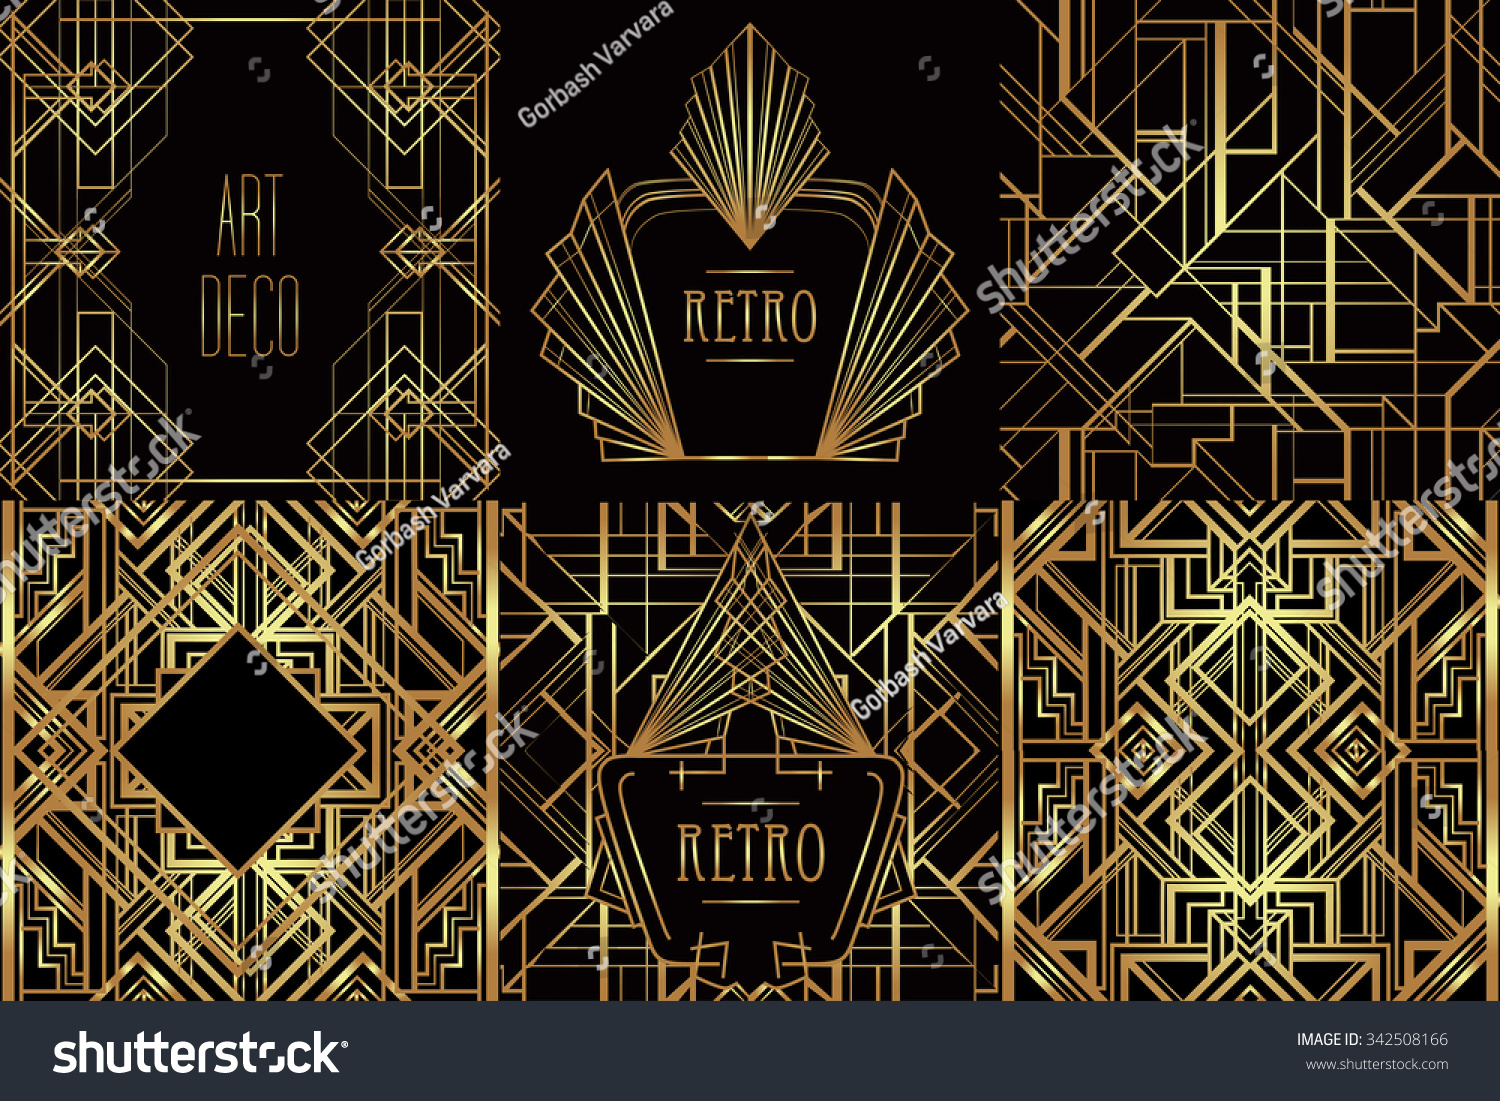 art deco vintage patterns frames retro stock vector 342508166 shutterstock. Black Bedroom Furniture Sets. Home Design Ideas